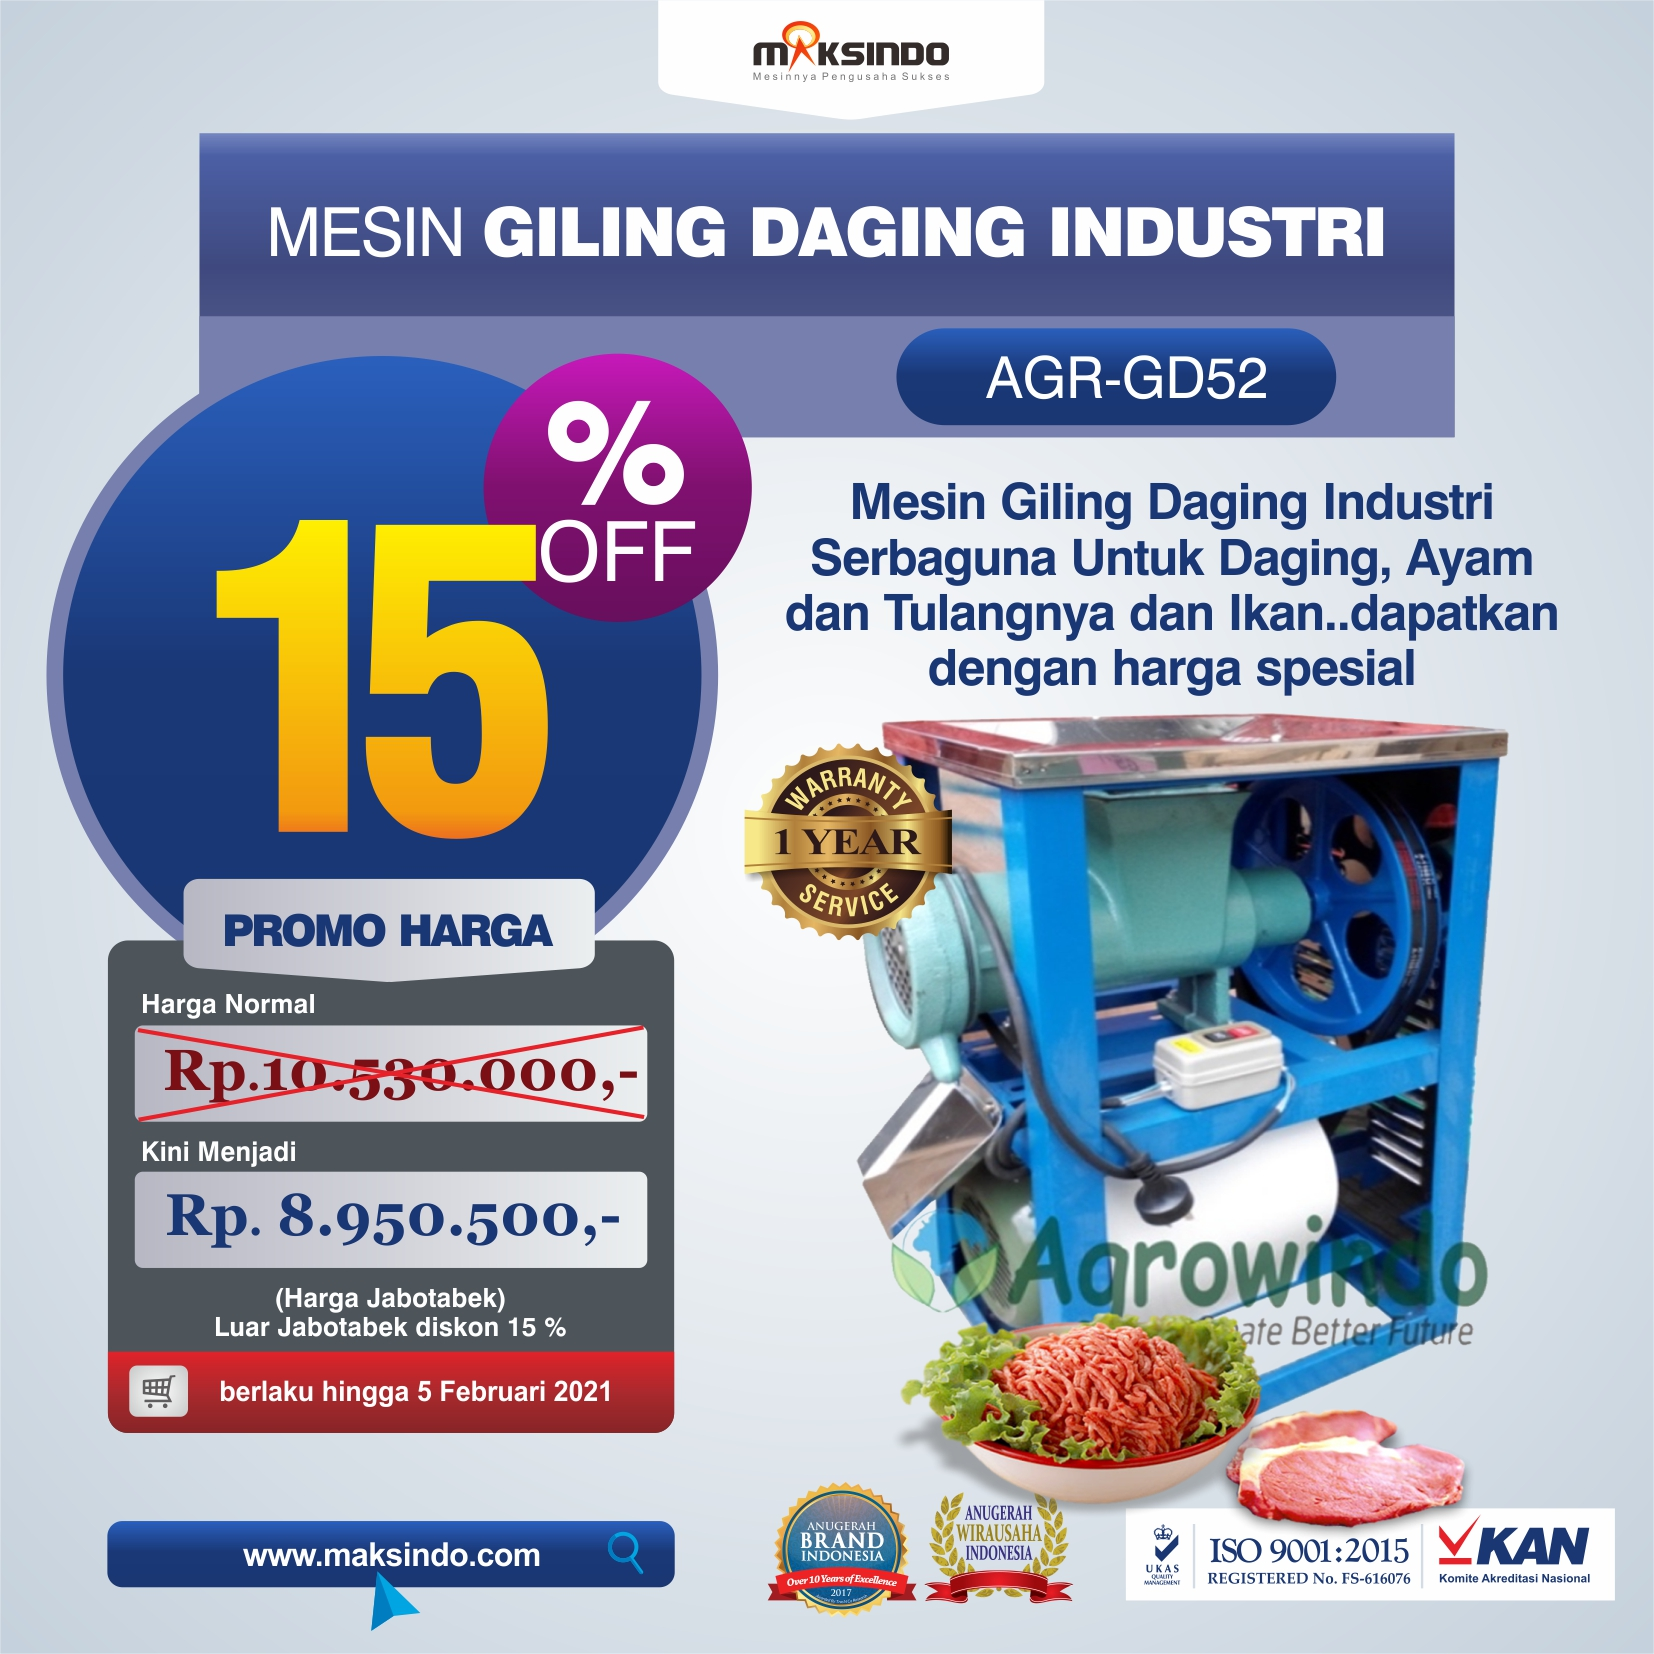 Mesin Giling Daging Industri (AGR-GD52)